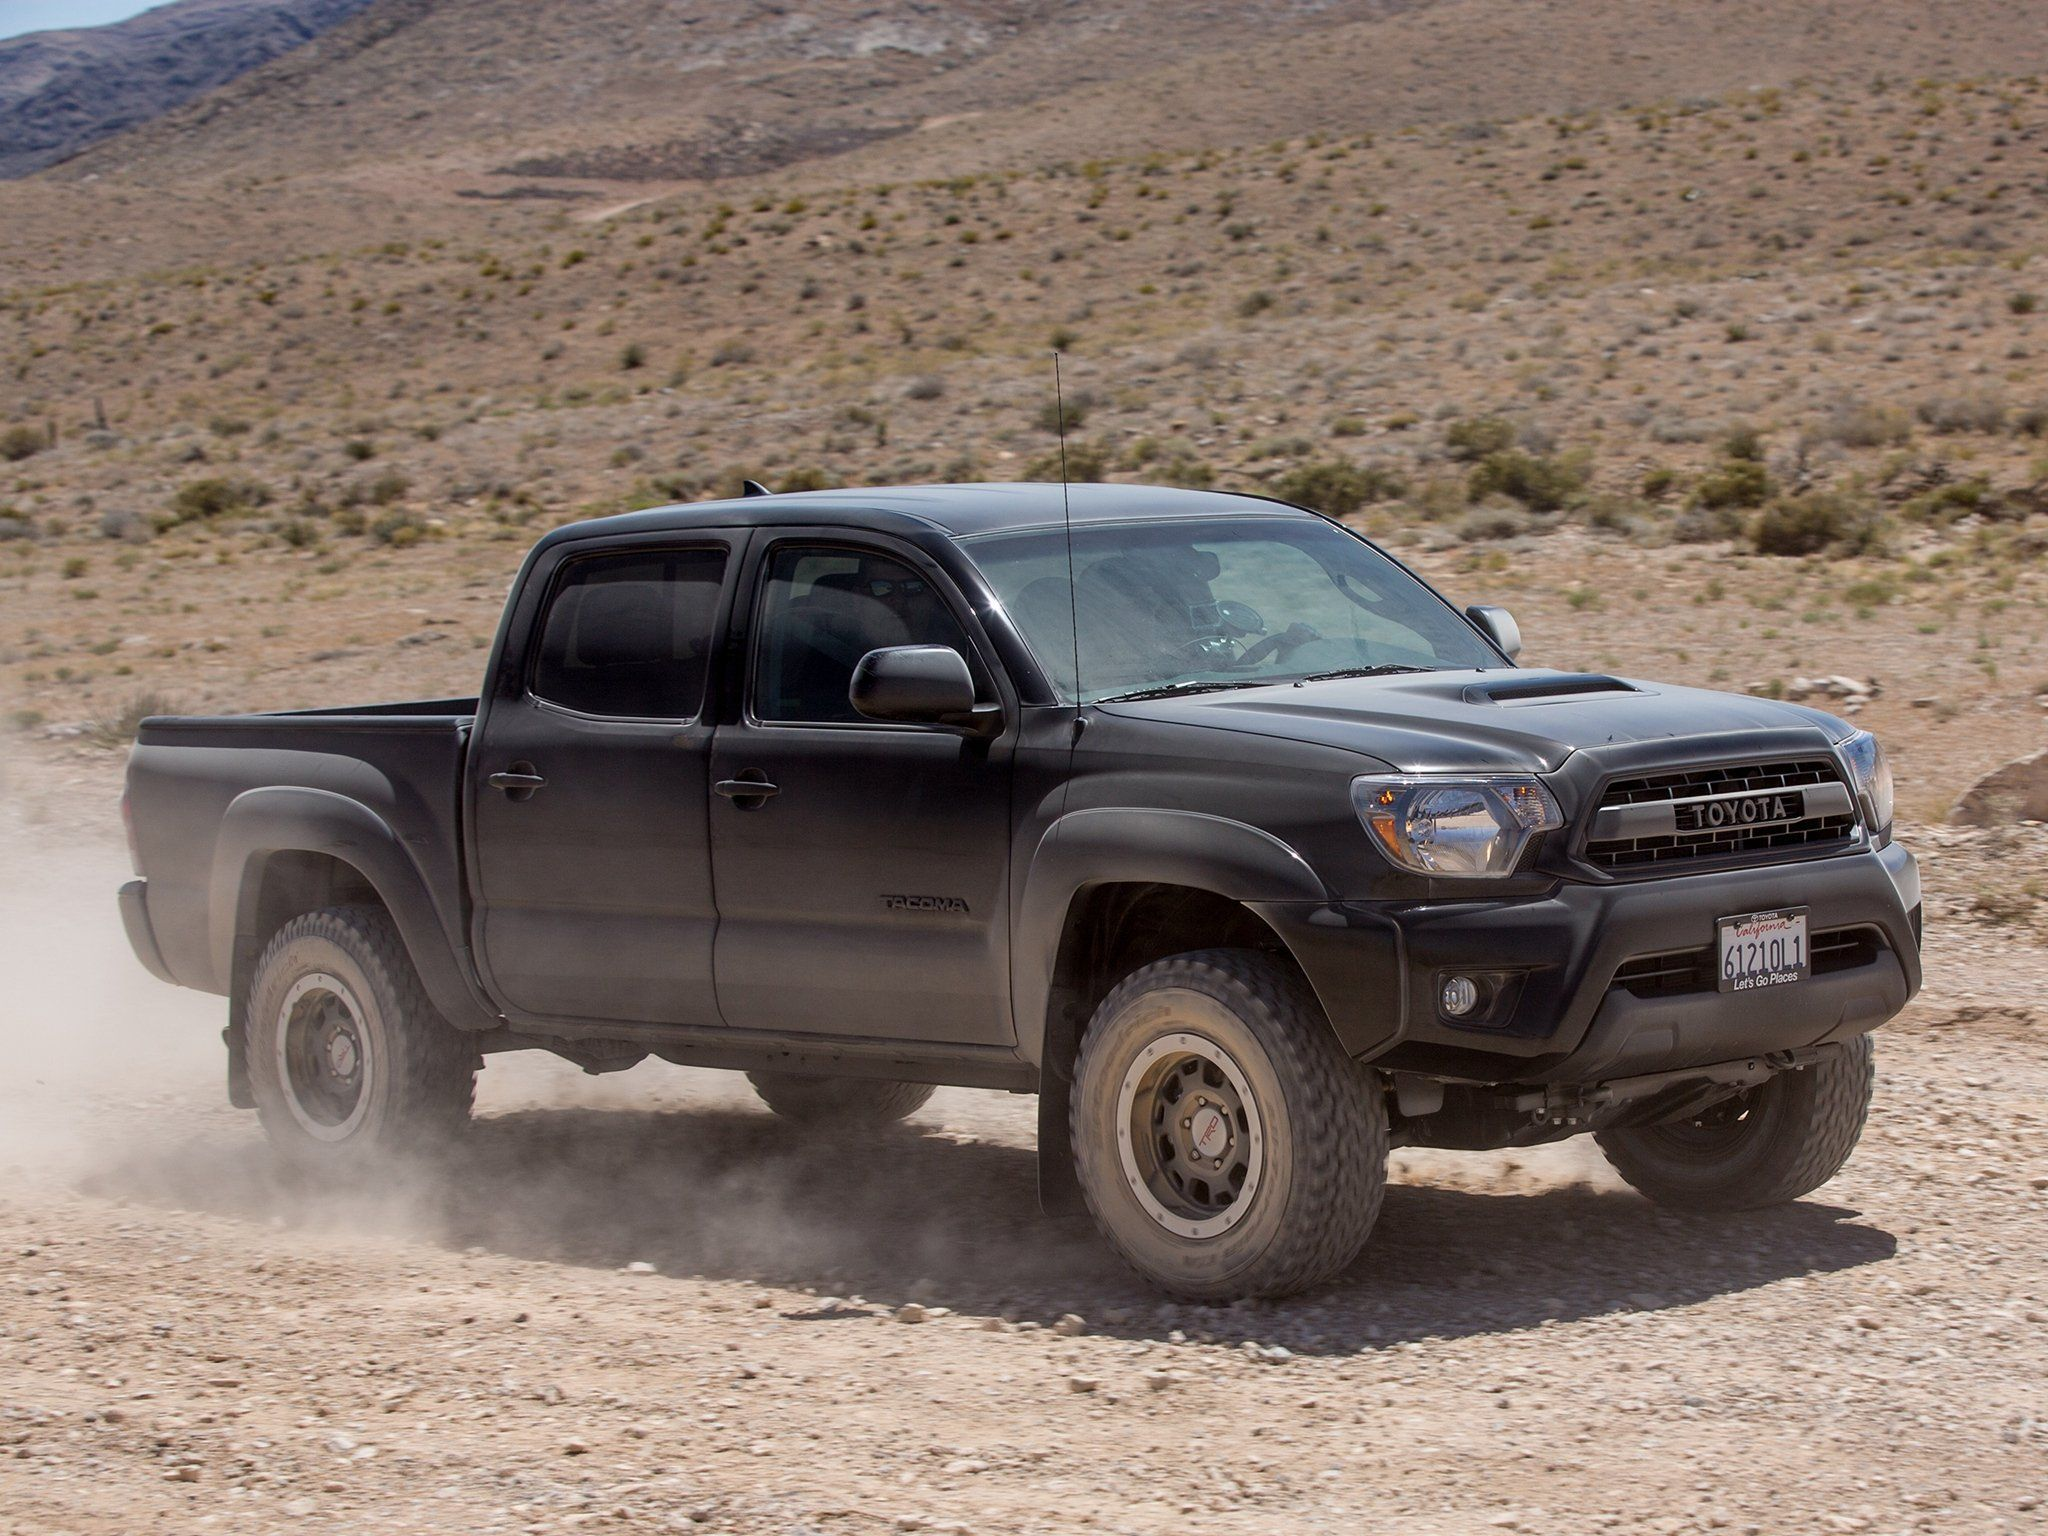 Toyota tacoma 2015 hd wallpapers download wallpaper pinterest toyota tacoma 2015 hd wallpapers voltagebd Choice Image